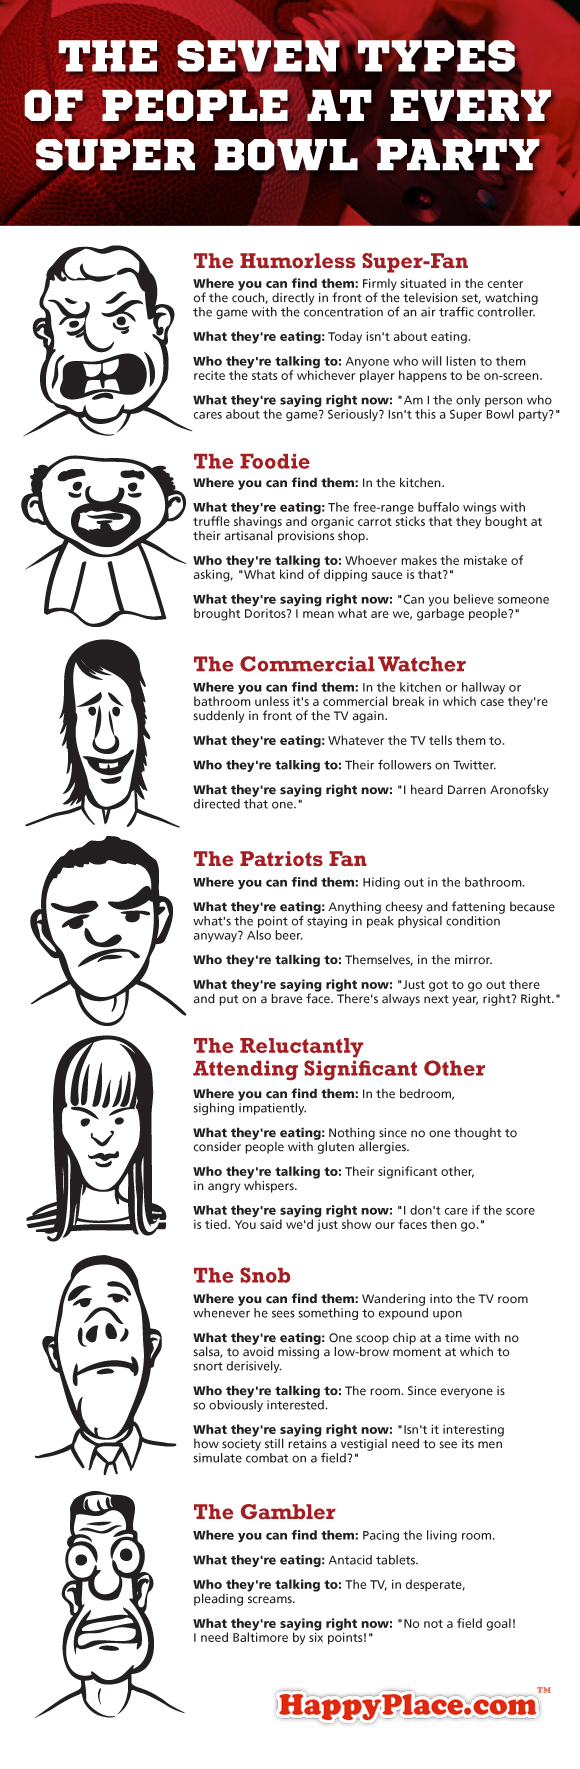 The seven types of people at every Super Bowl party.